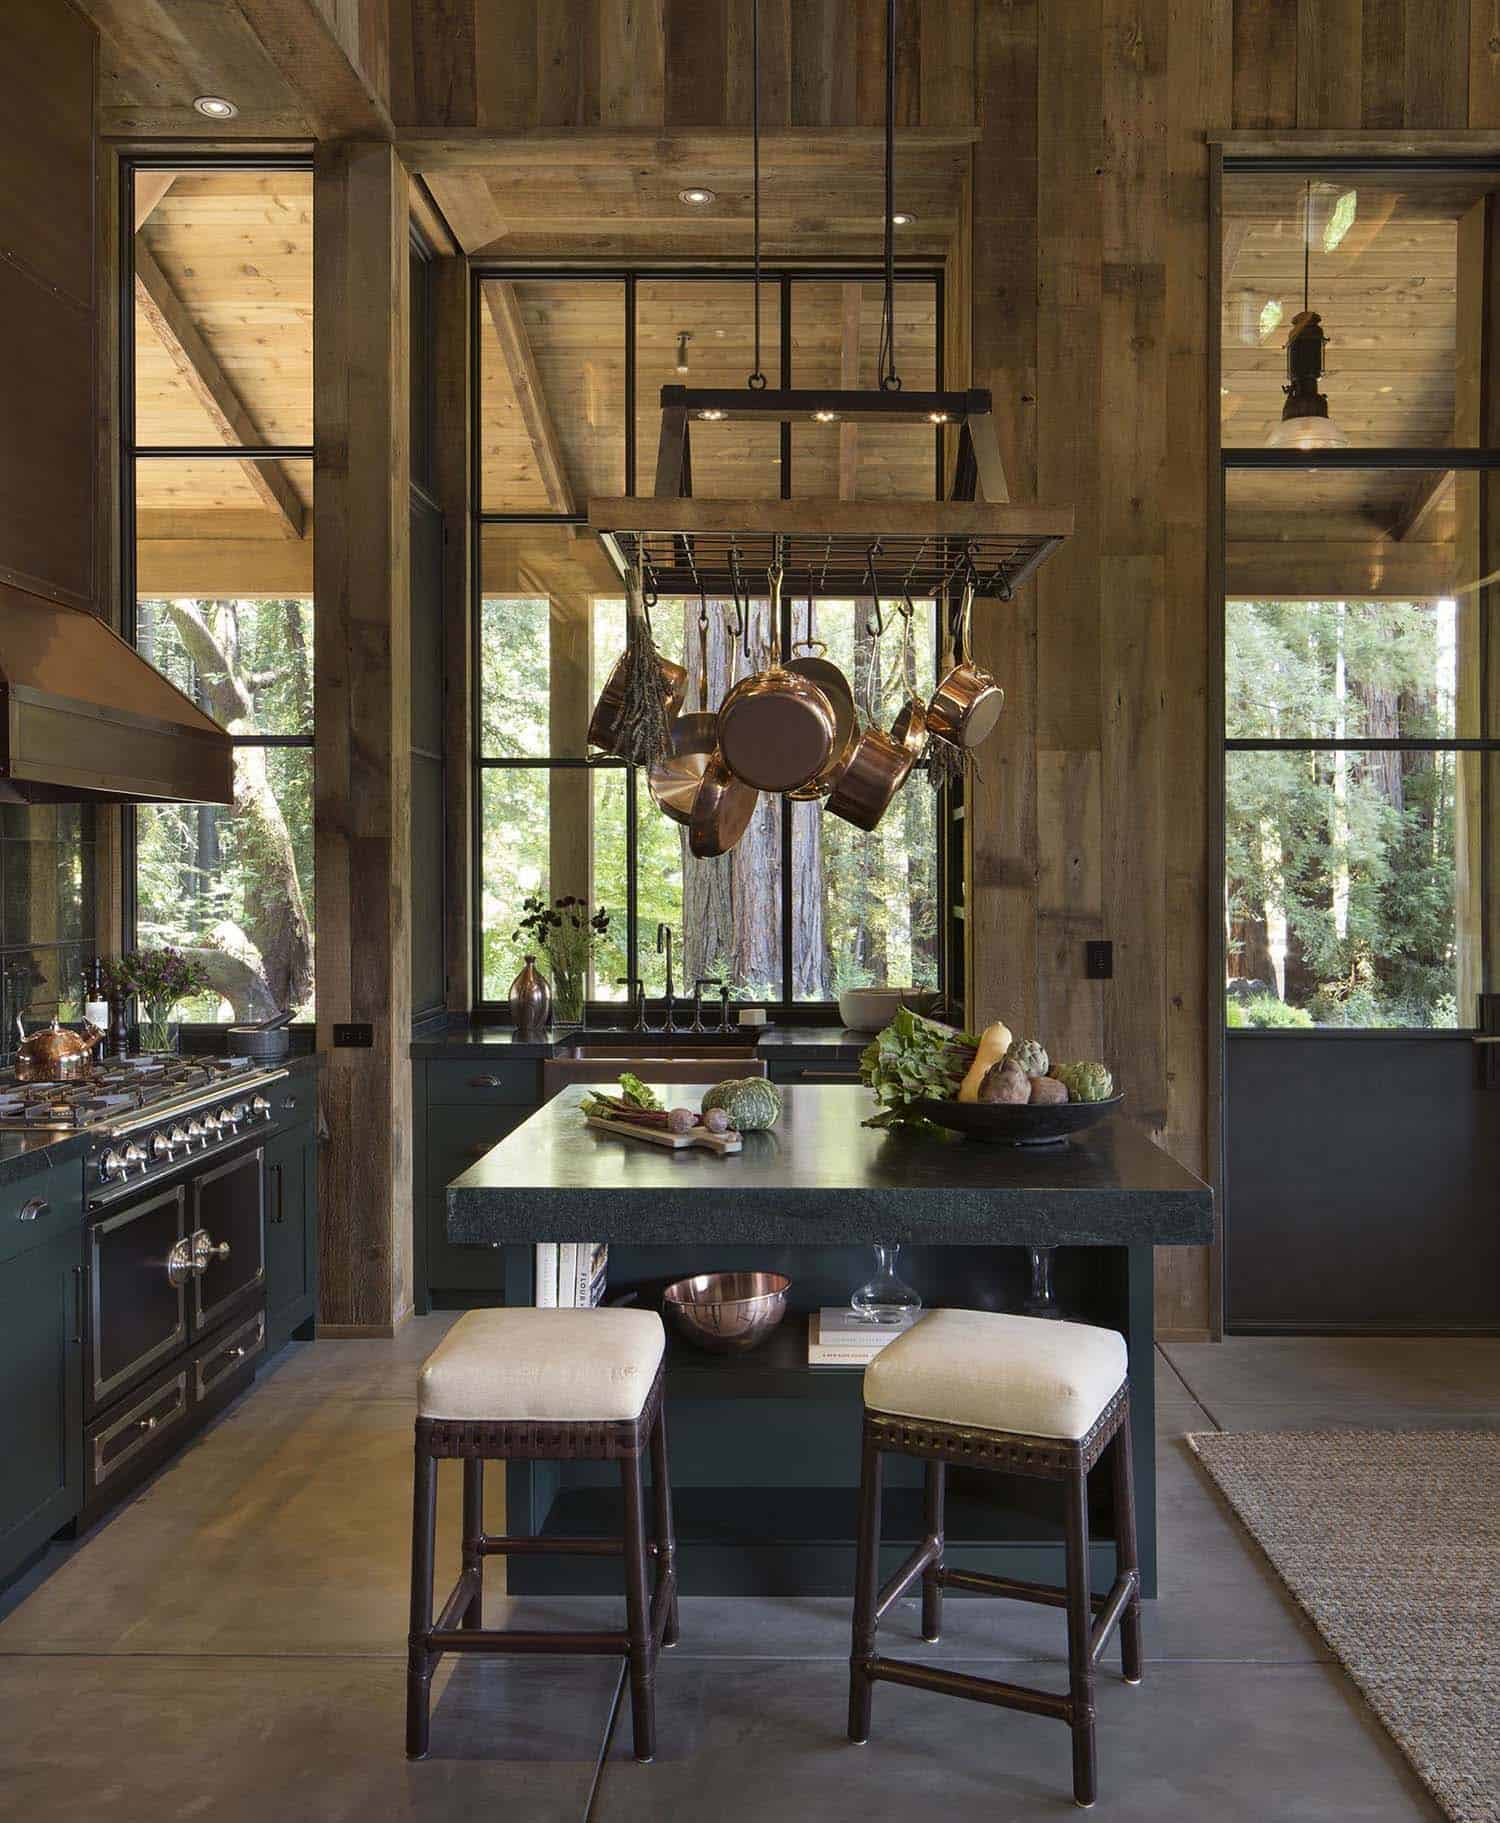 56 Incredible Rustic Kitchen Ideas (Photos